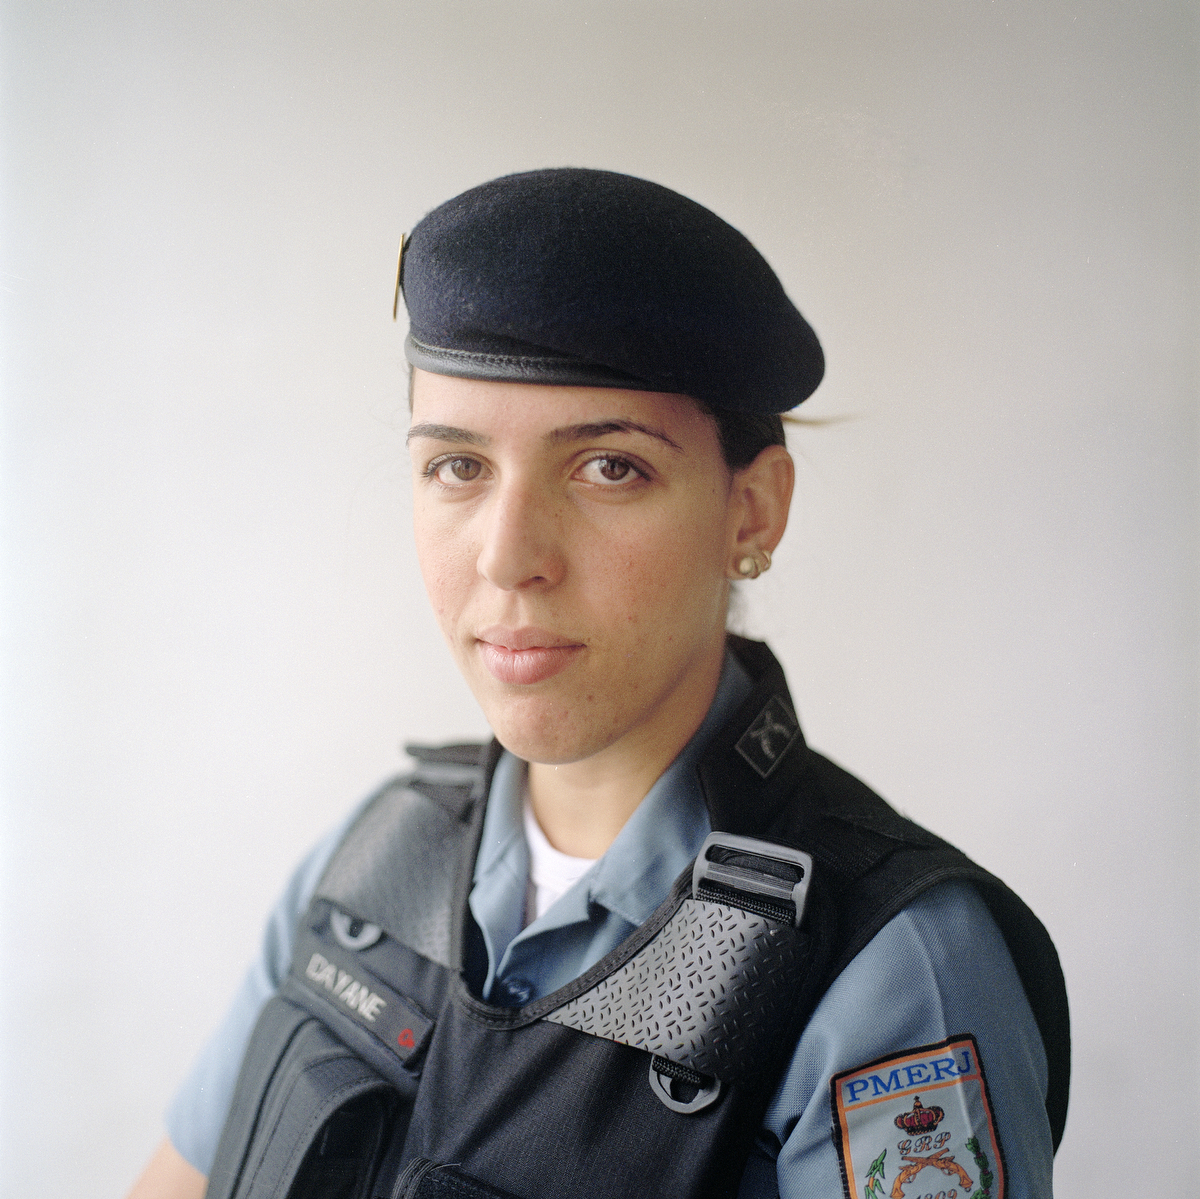 Patrol officer Dayane Alves, 22, is  with the Rapid Response Team of the Pacifying Police Unit (UPP) in Complexo do Caju, Rio de Janeiro, Brazil.